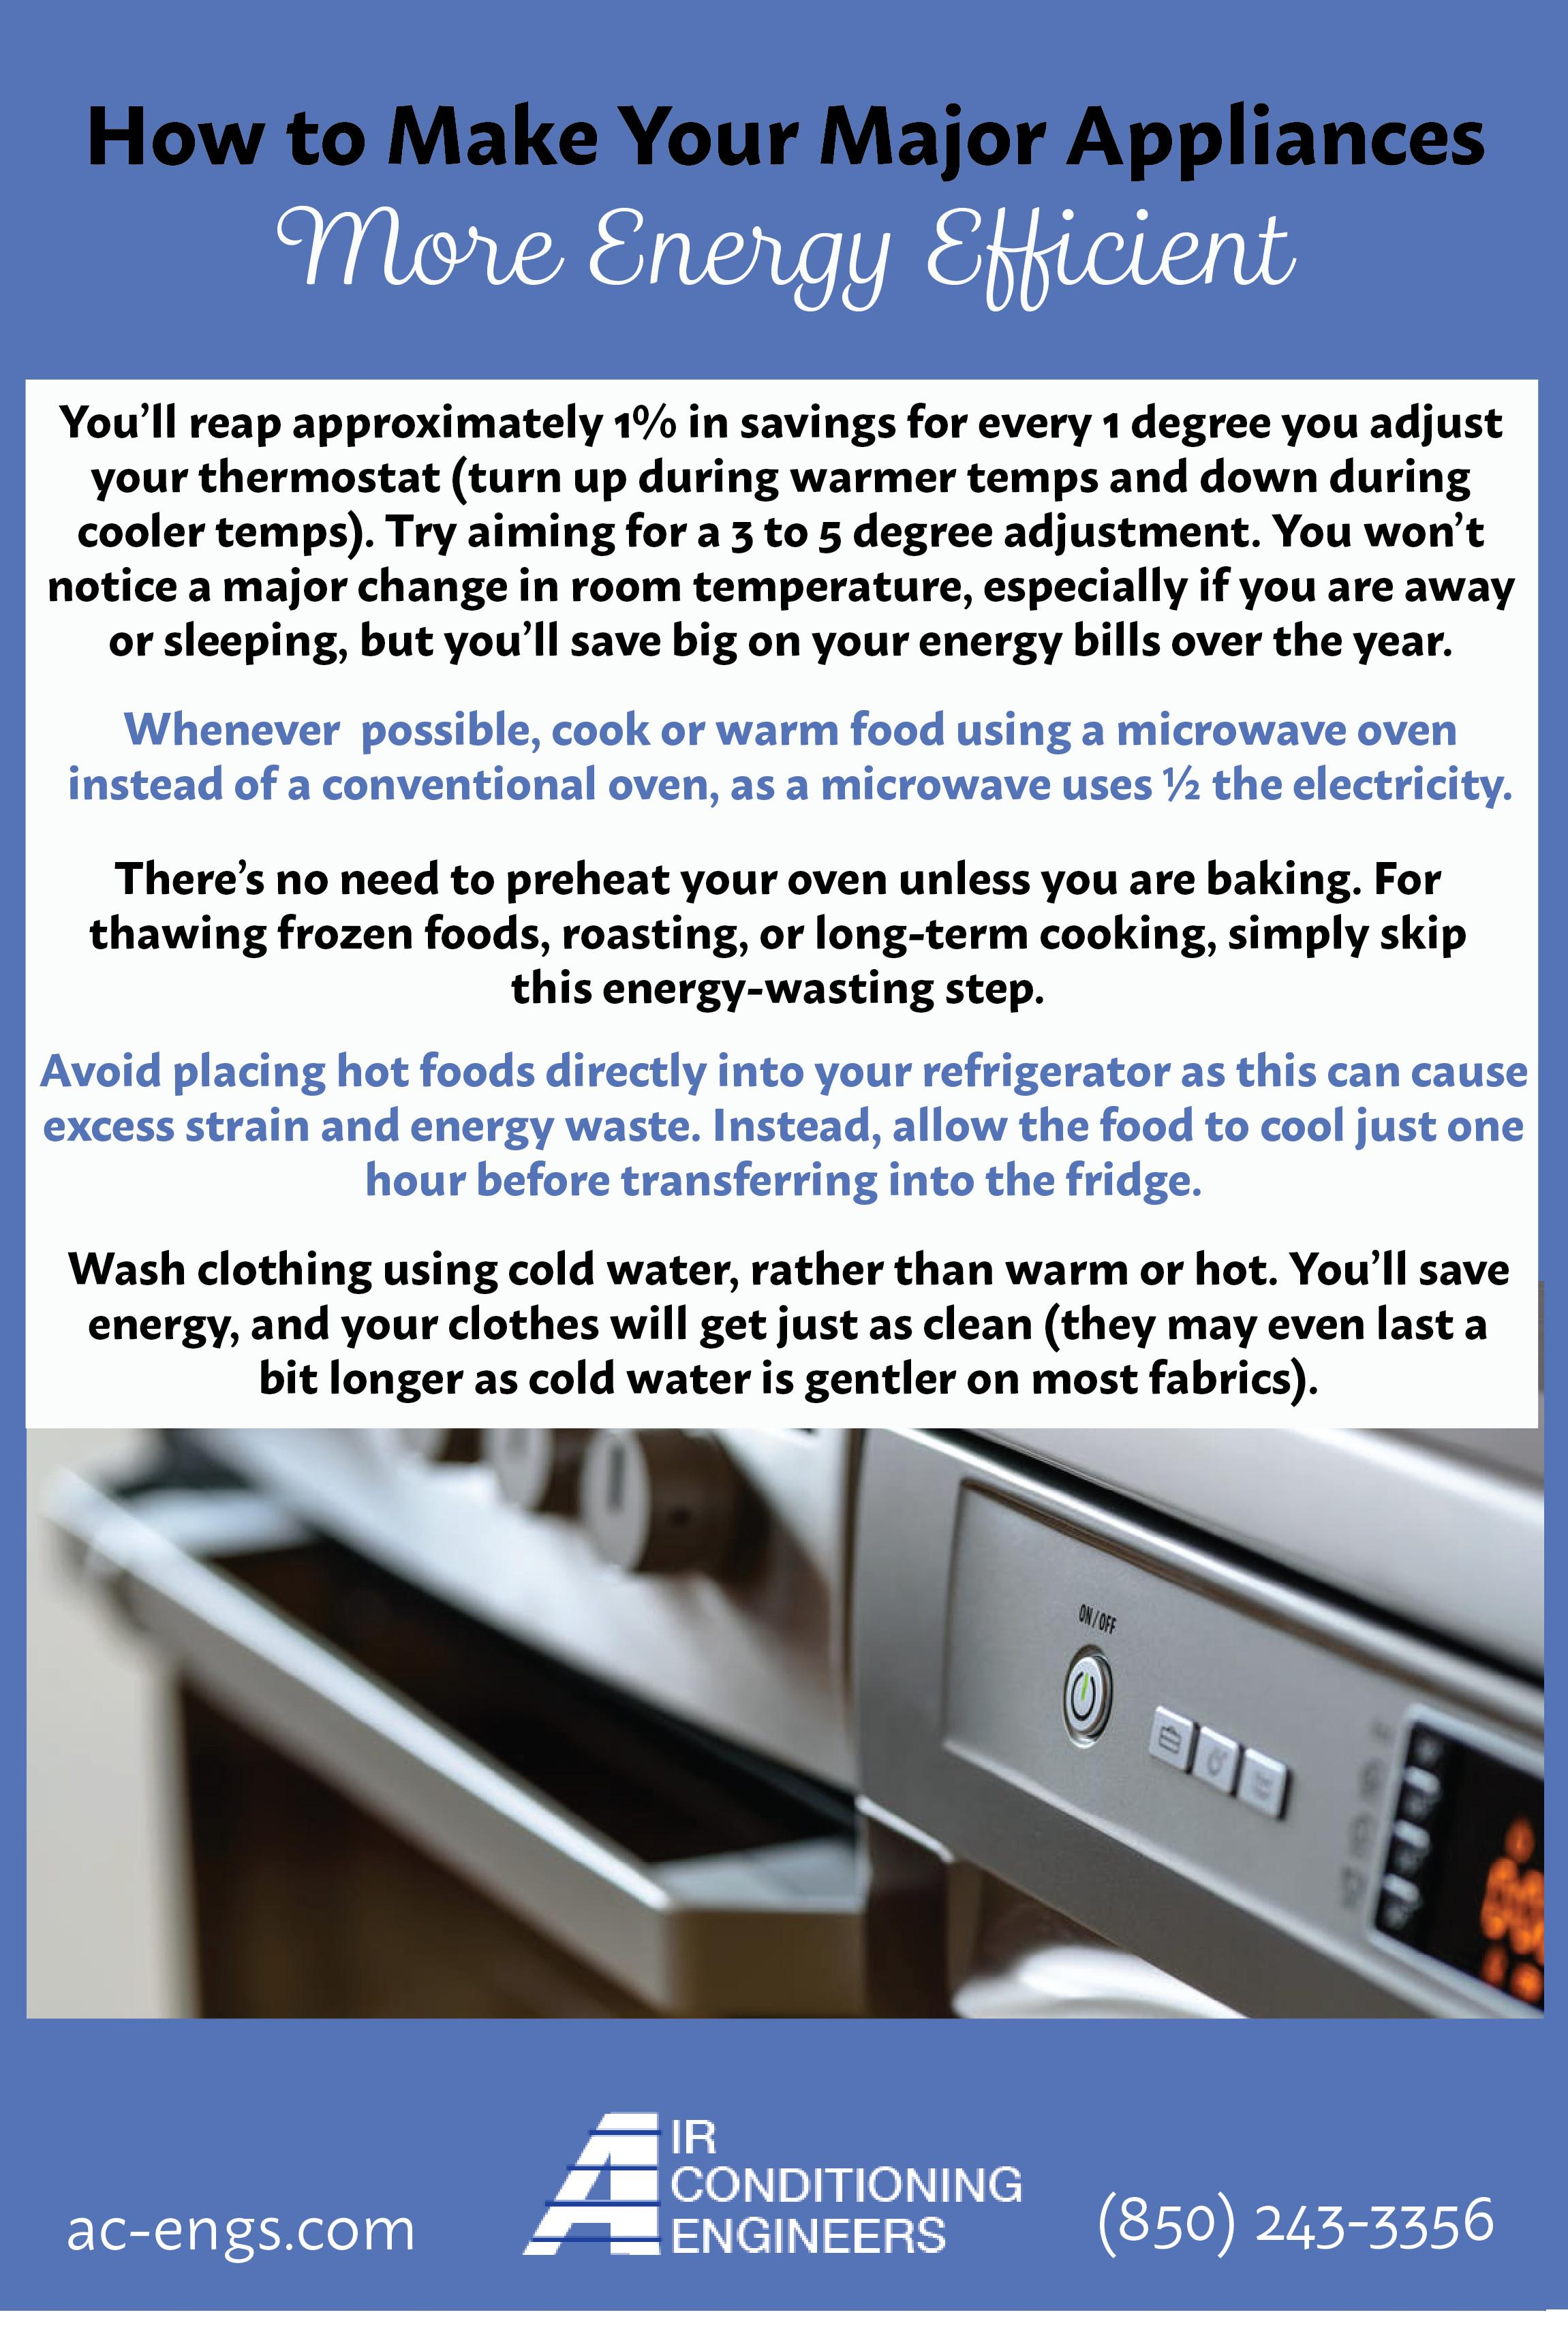 Energy Efficient Tips Home Appliances Engineers